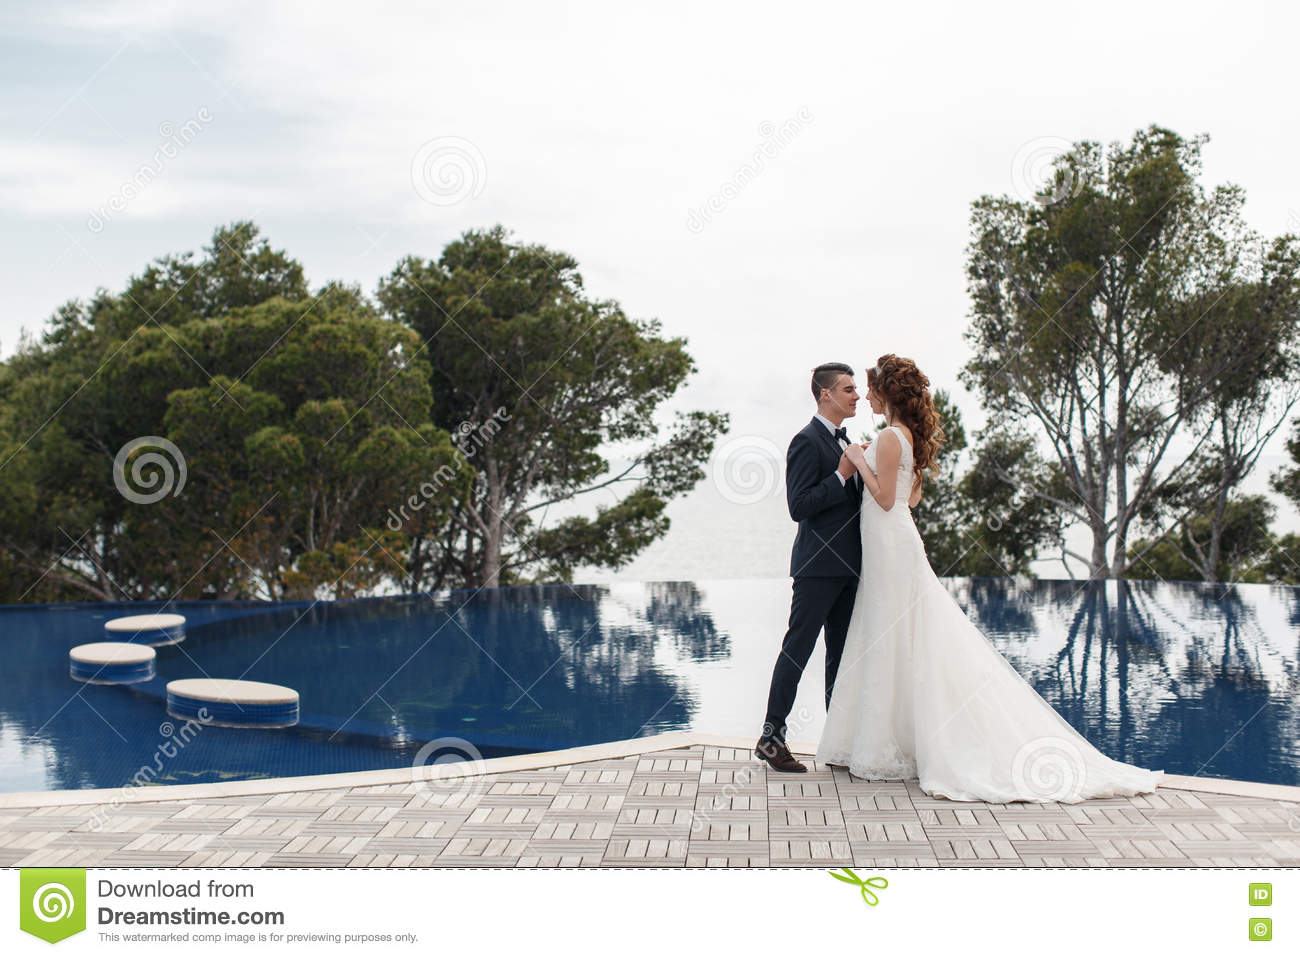 eb62ed582 The Bride And Groom Beside The Pool With Blue Water Stock Photo ...